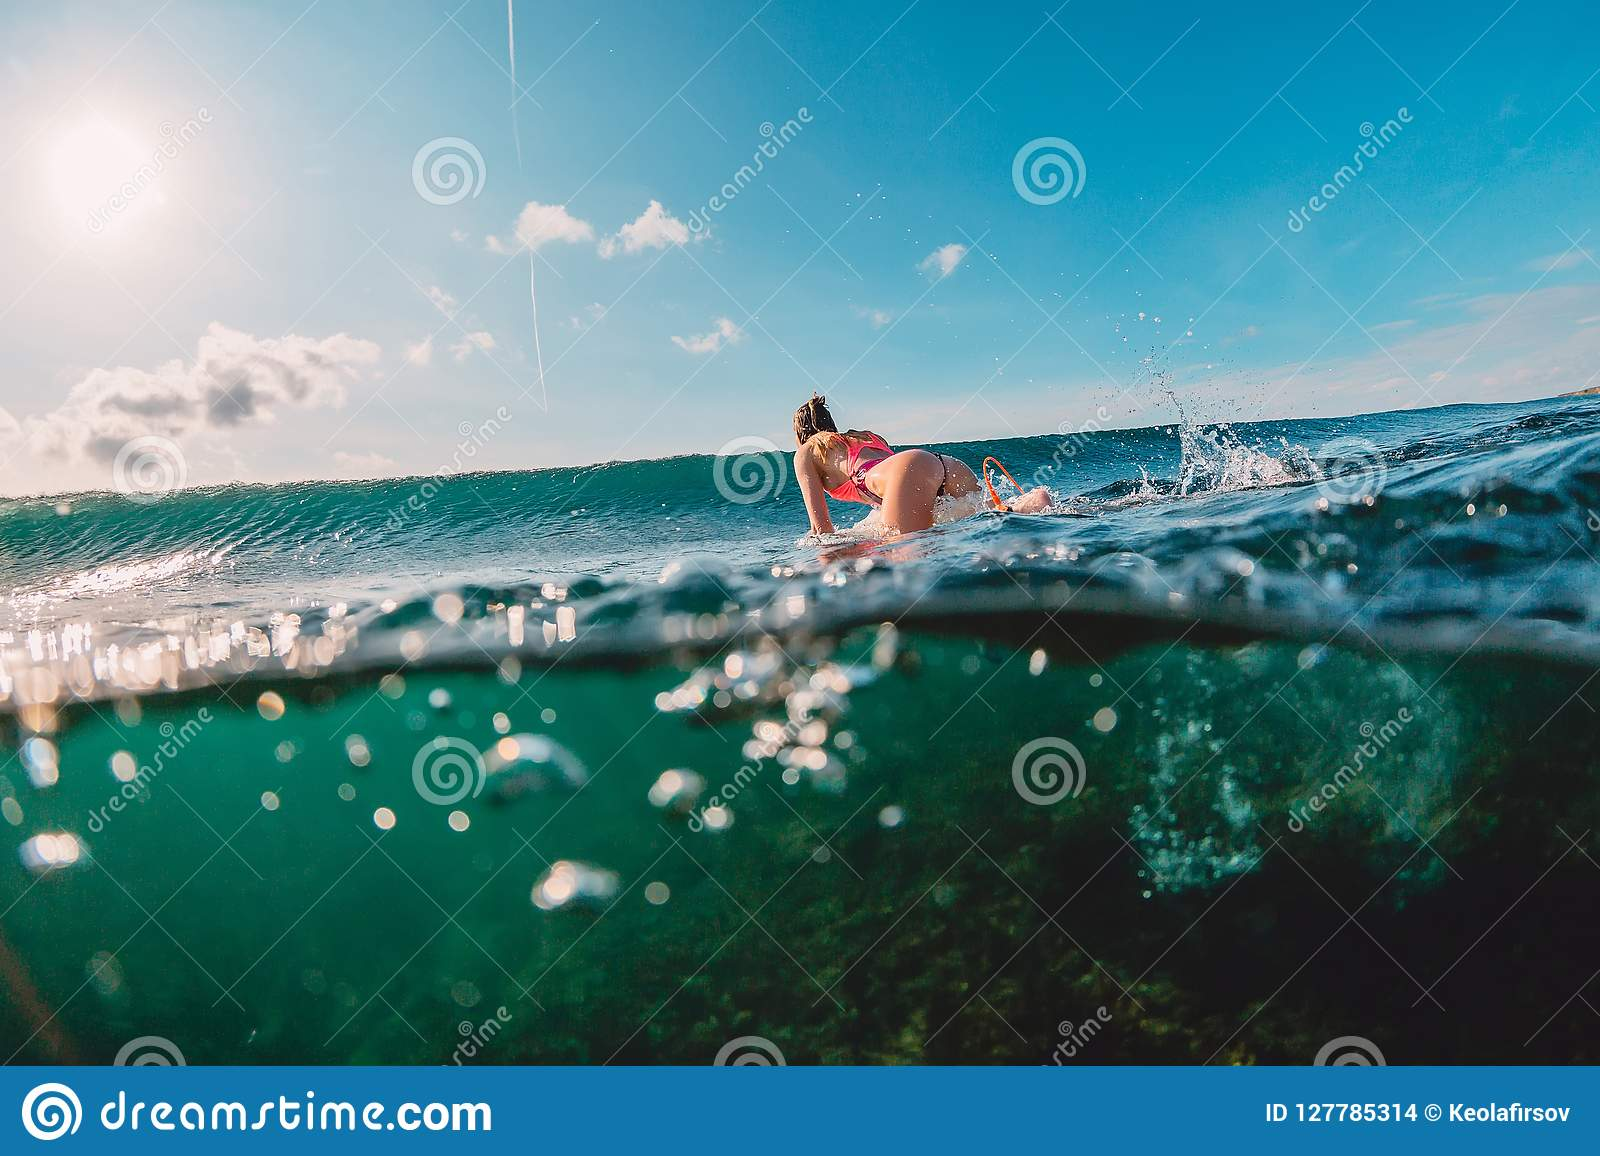 Attractive surfer woman in ocean and wave. Surf girl make duck dive.